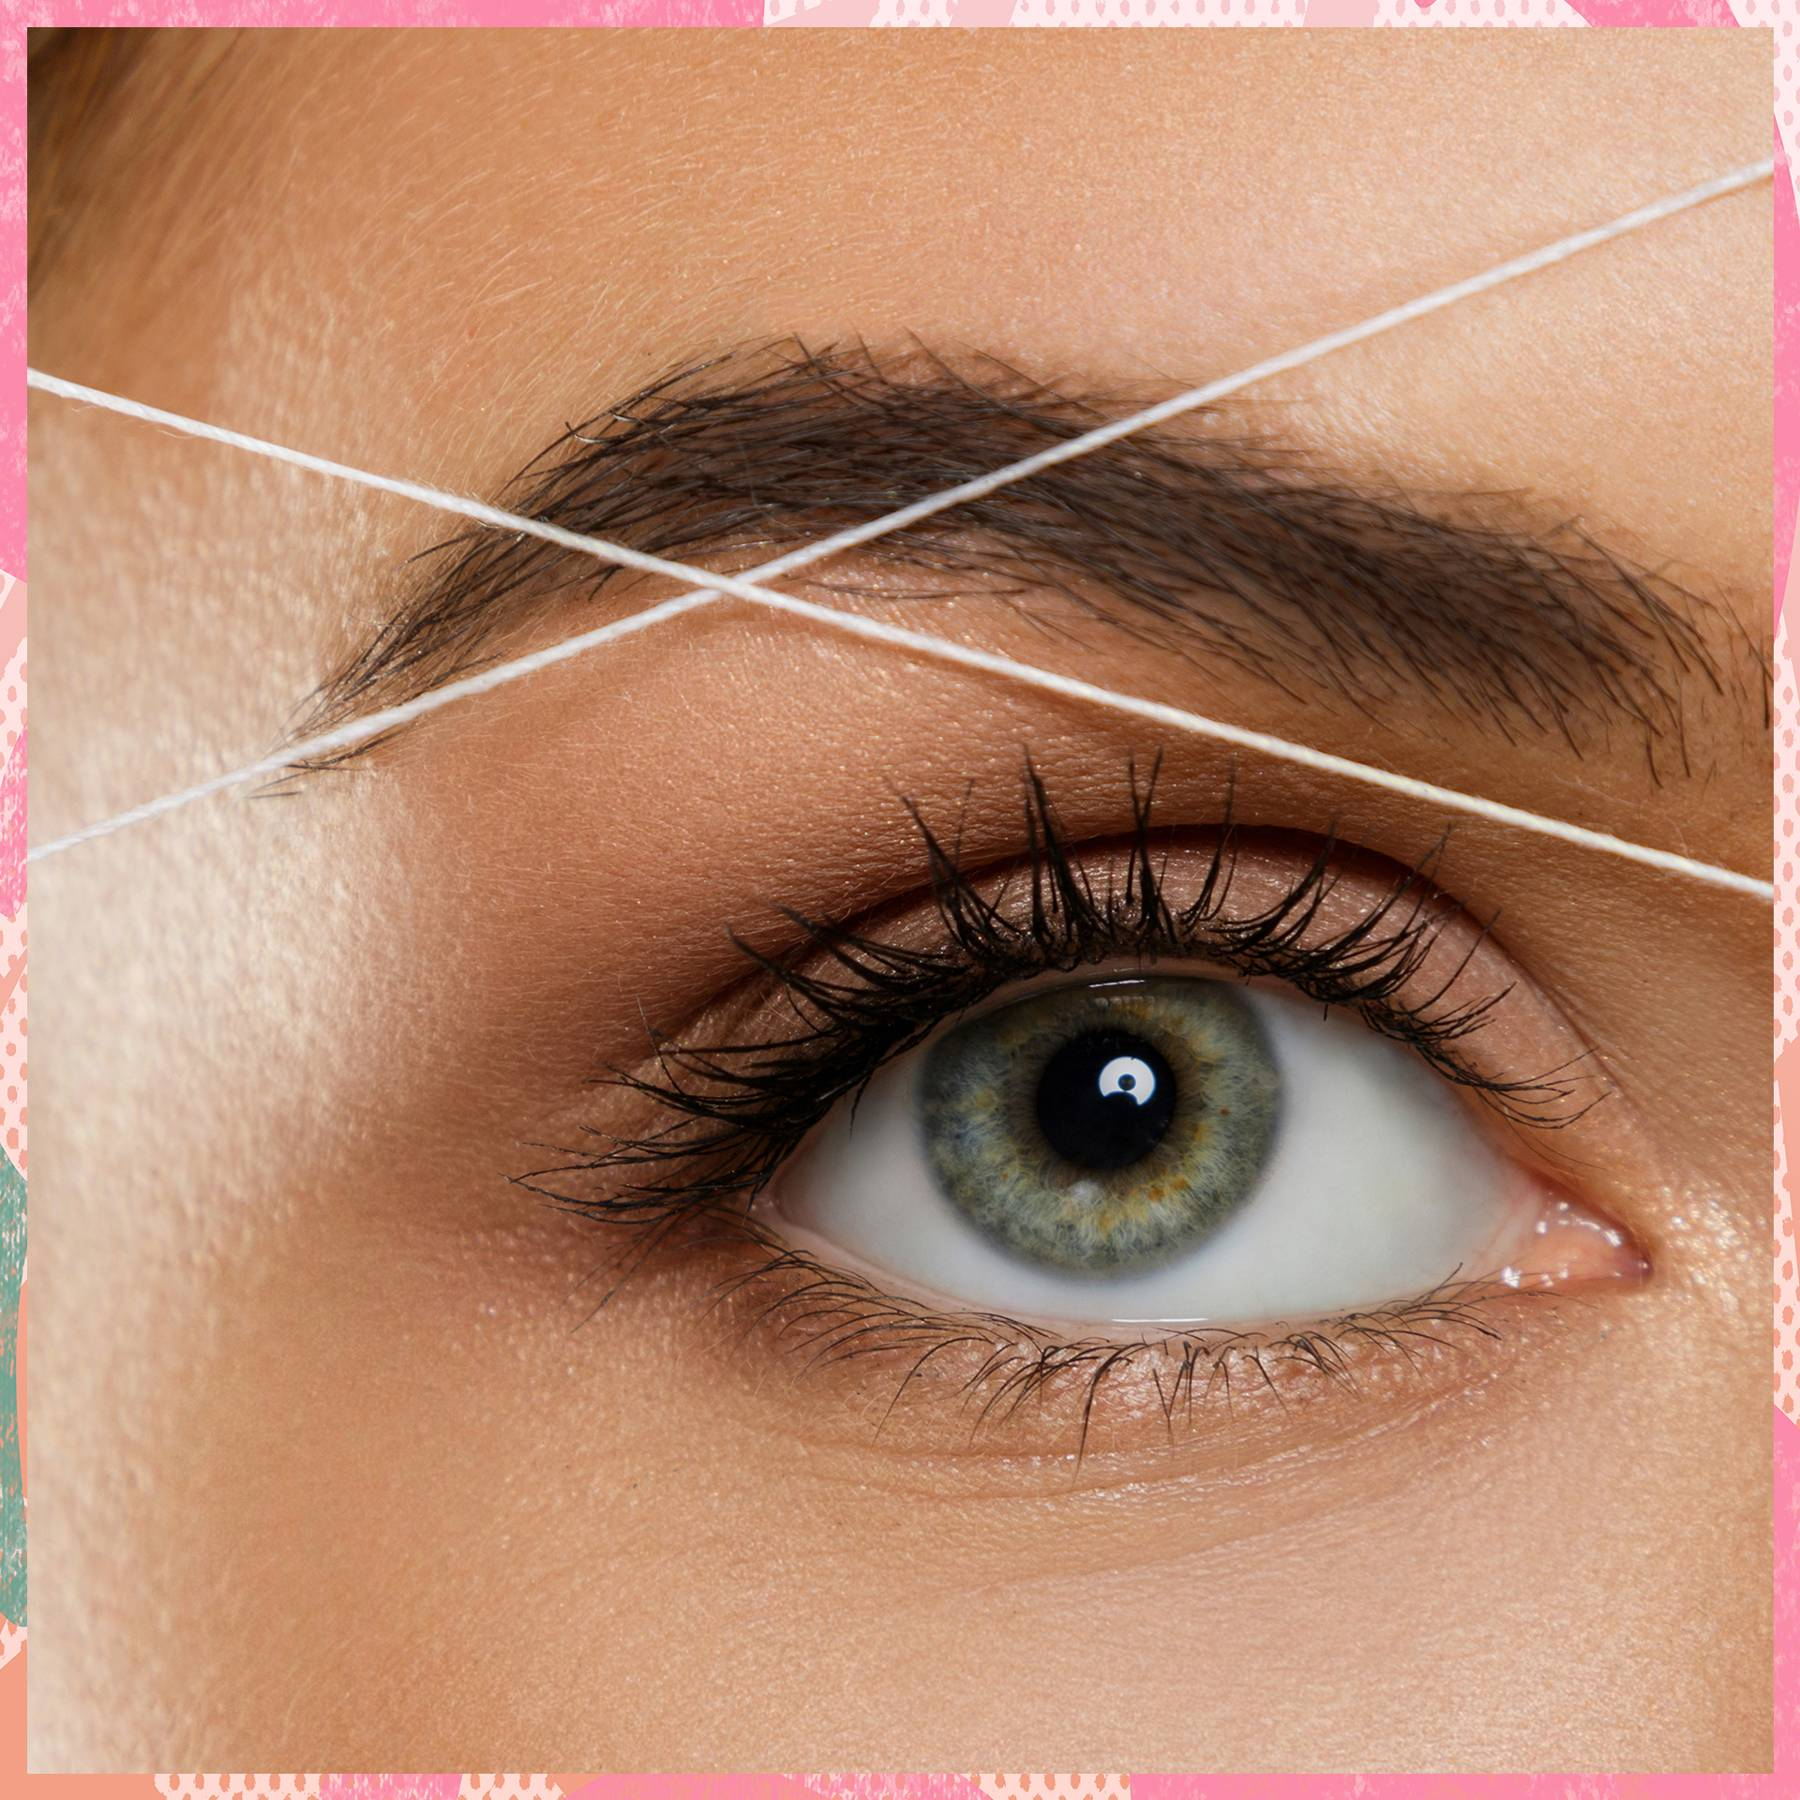 Your definitive guide to removing eyebrow hairs, according to a brow guru the A-list can't live without